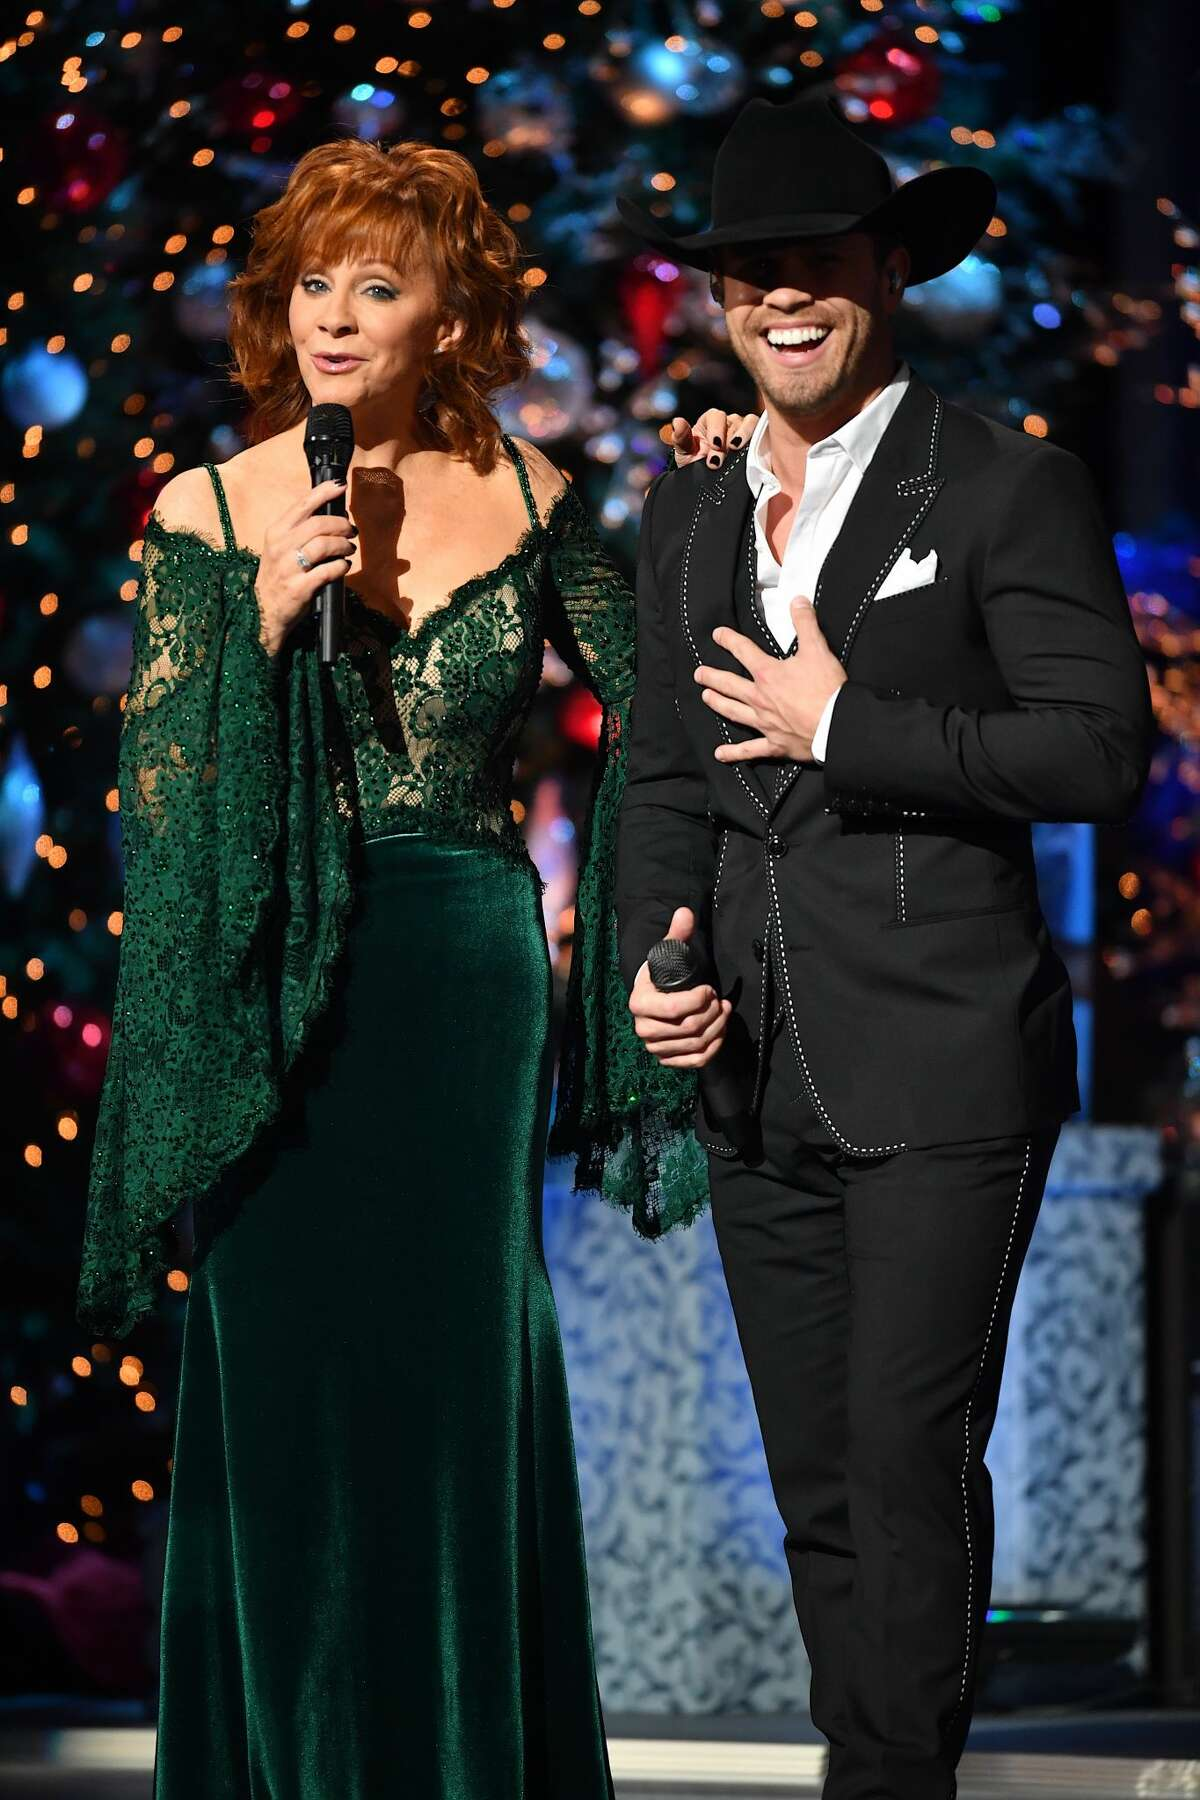 Recording Artists Reba McEntire and Dustin Lynch speak on stage during 2017 CMA Country Christmas at The Grand Ole Opry on November 14, 2017 in Nashville, Tennessee. (Photo by Jason Davis/WireImage)